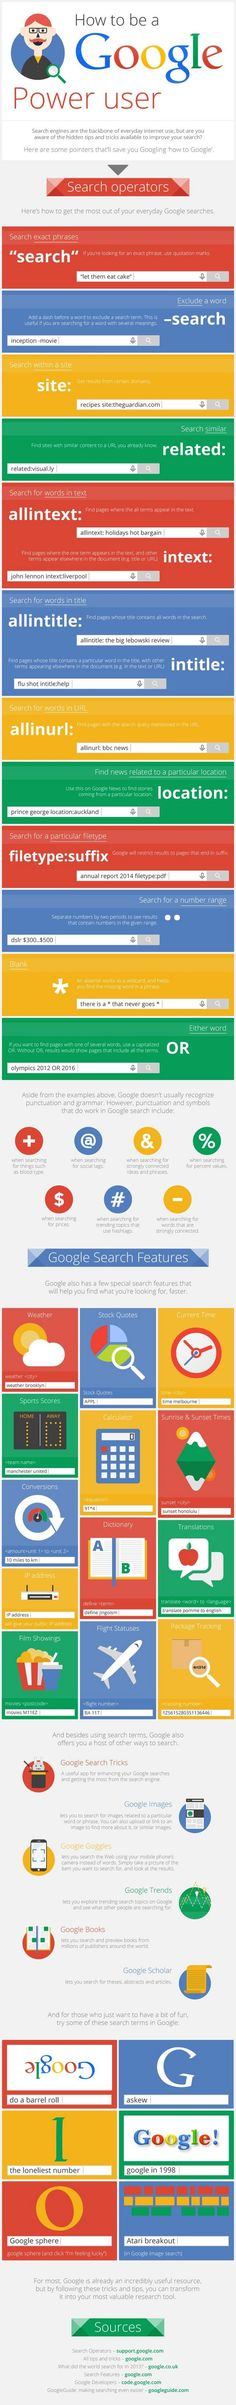 How to Become a Google Search Jedi Master  - Imgur